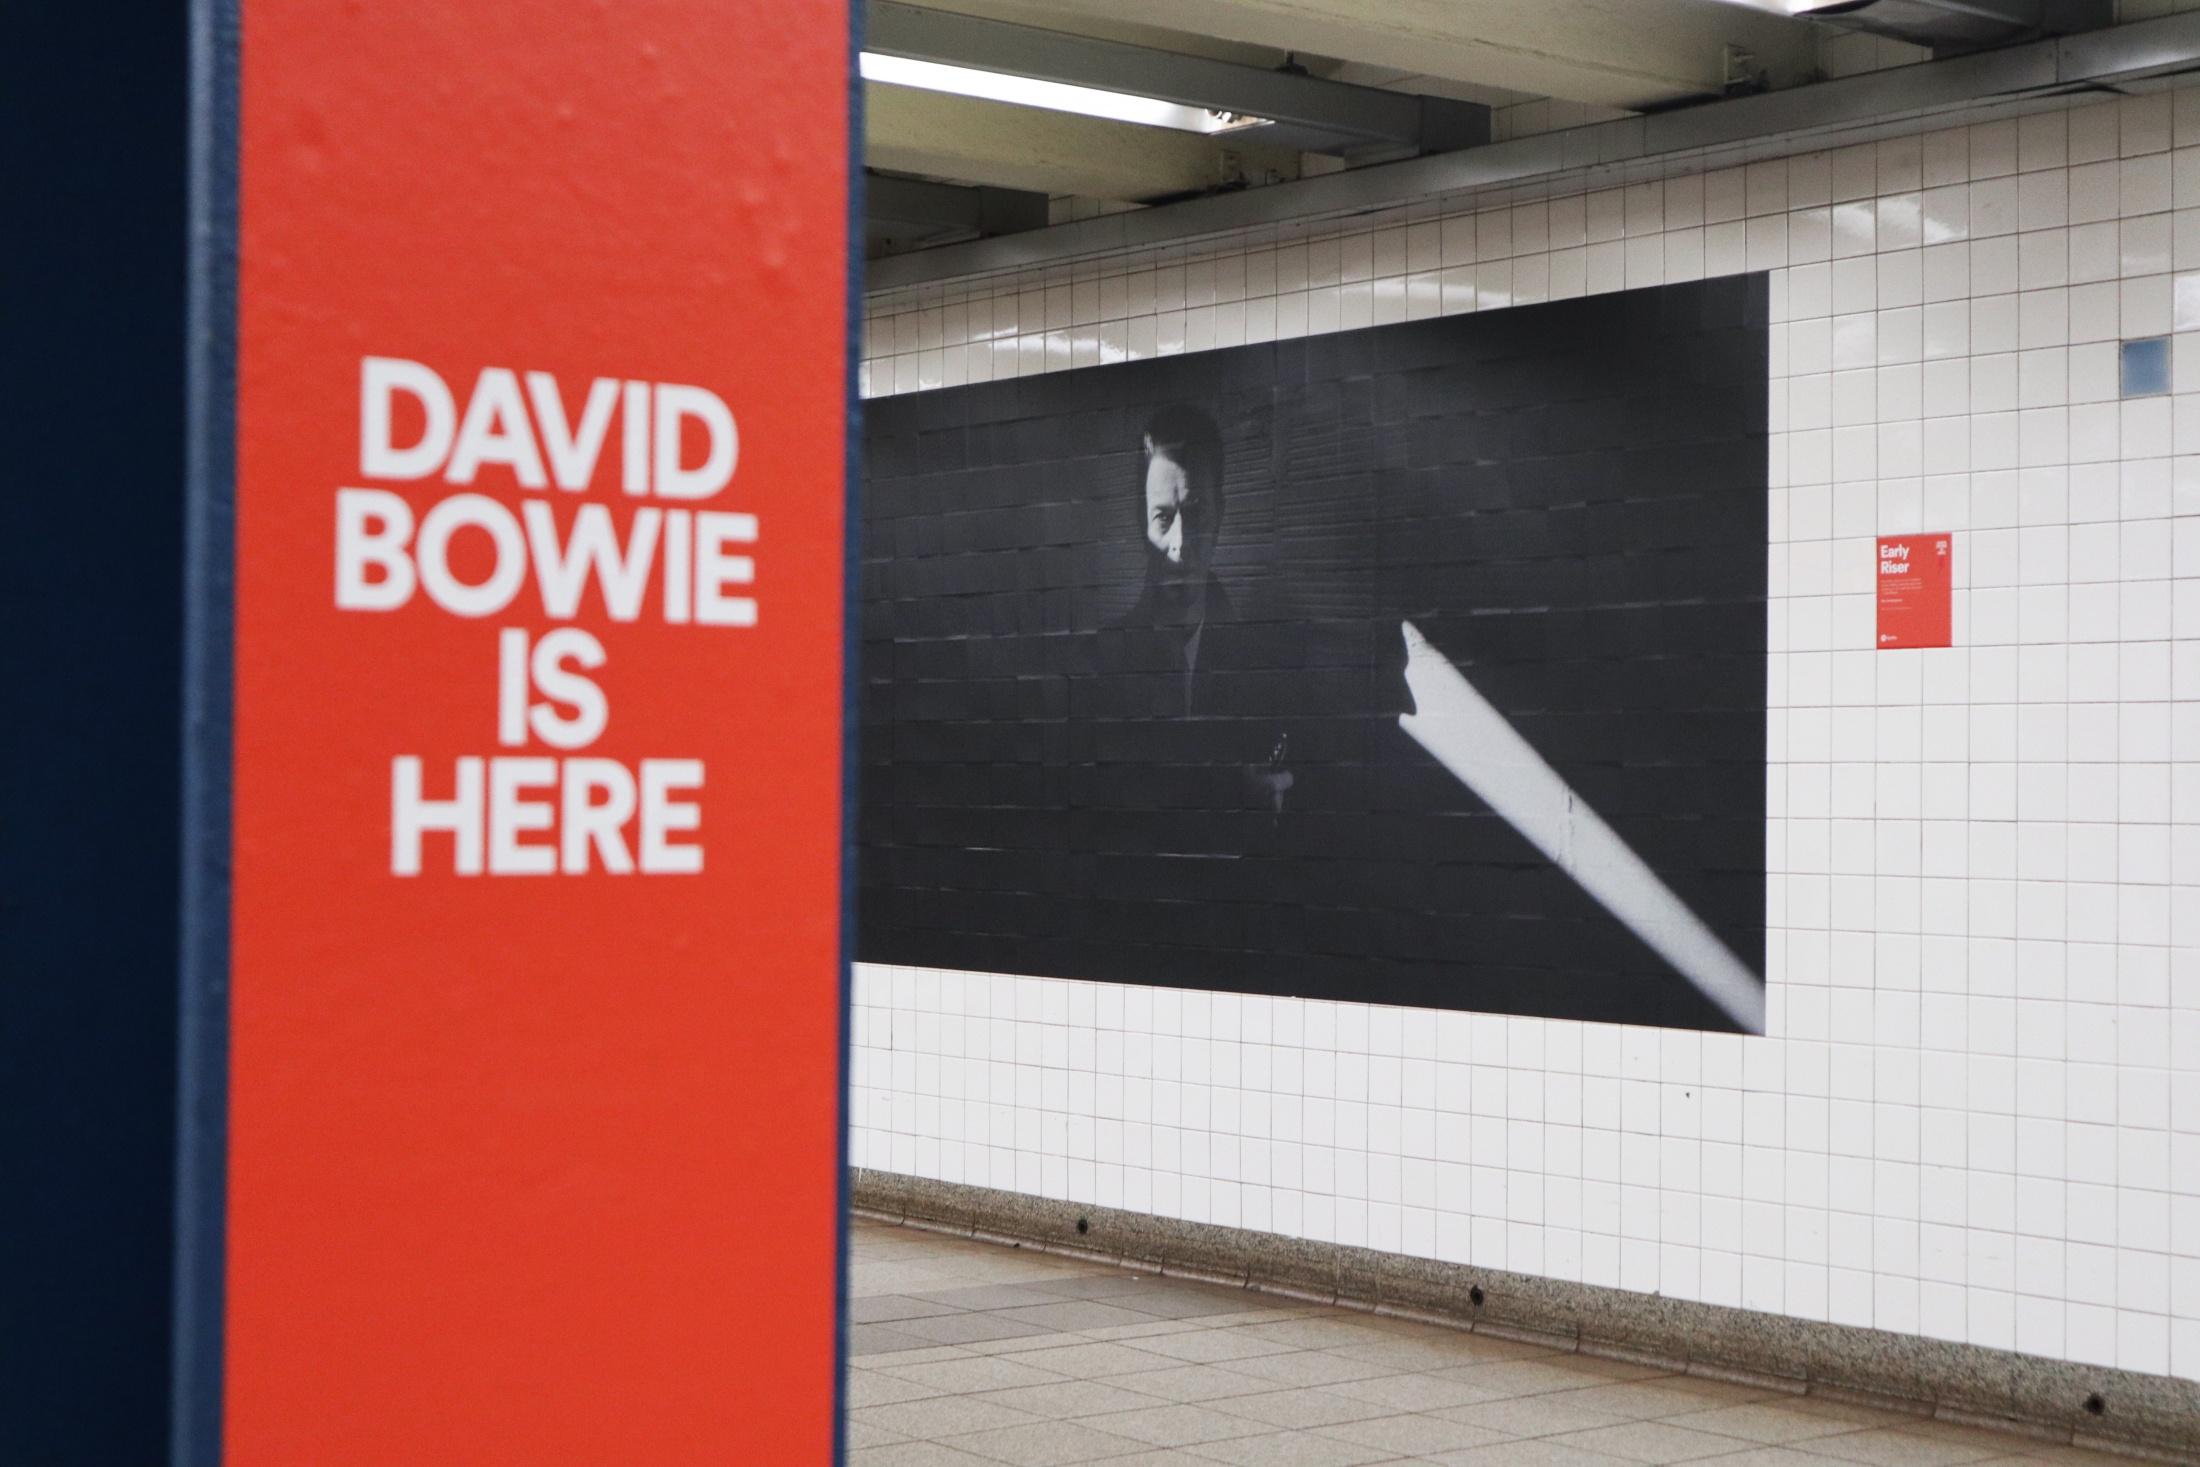 Thumbnail for David Bowie Is Here